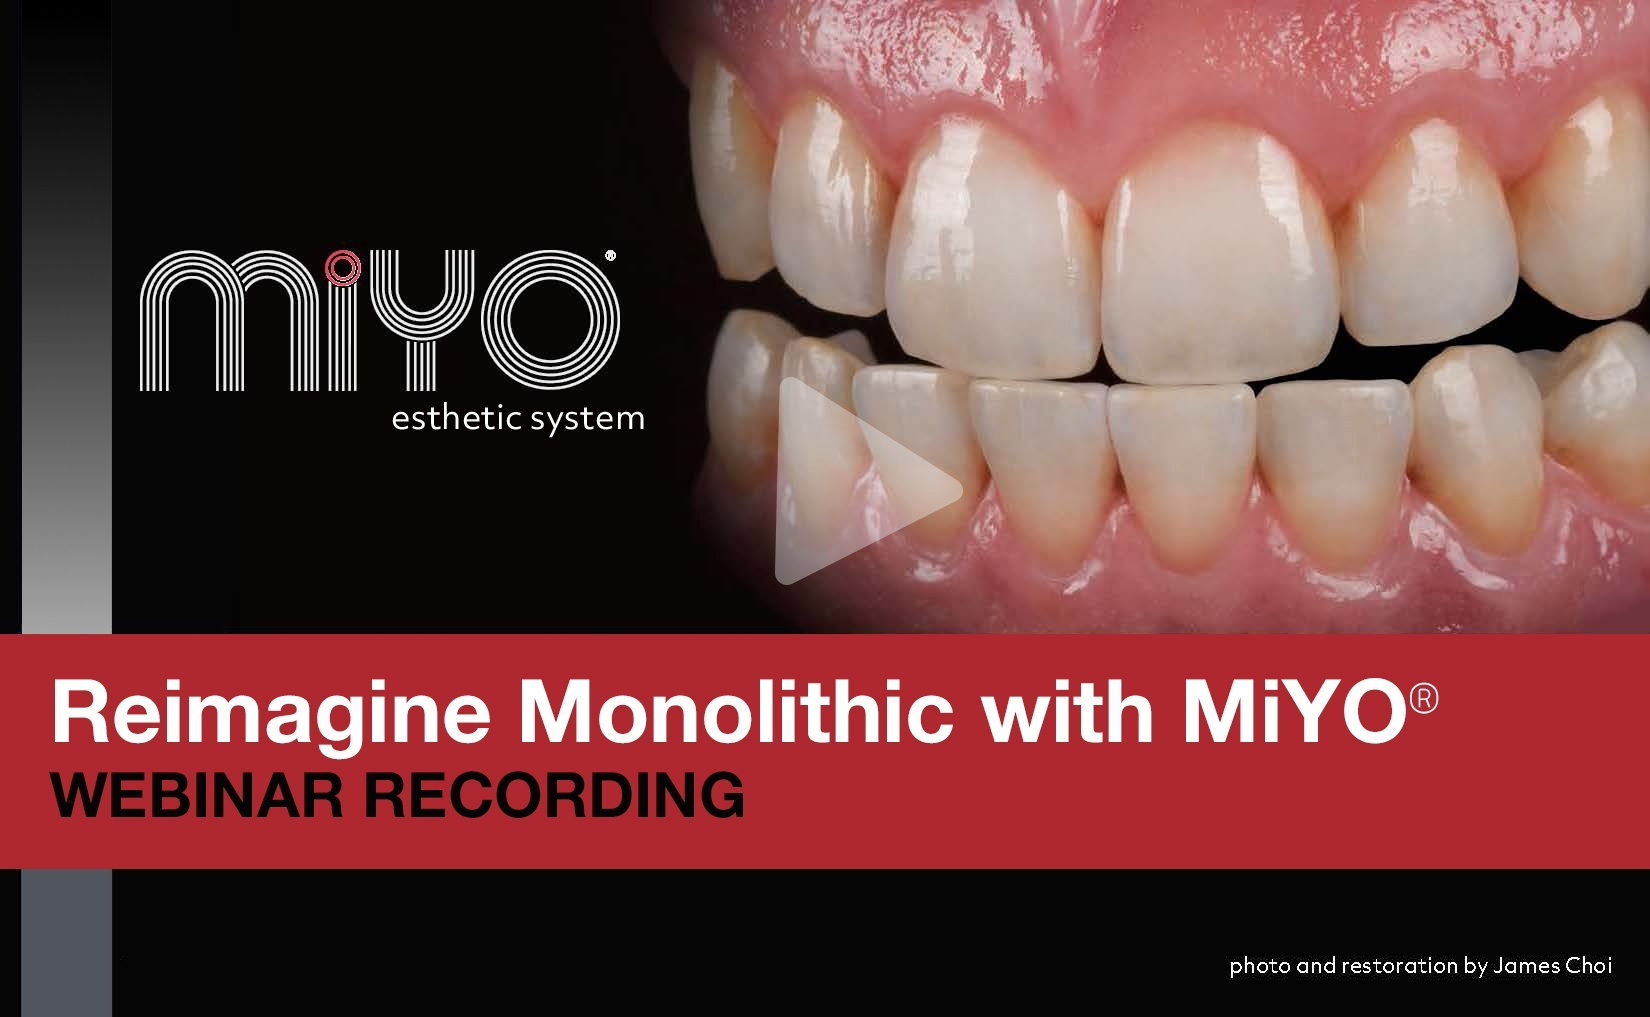 Watch the 'Reimagine Monolithic with MiYO' webinar recording - presented by James Choi & Don Cornell